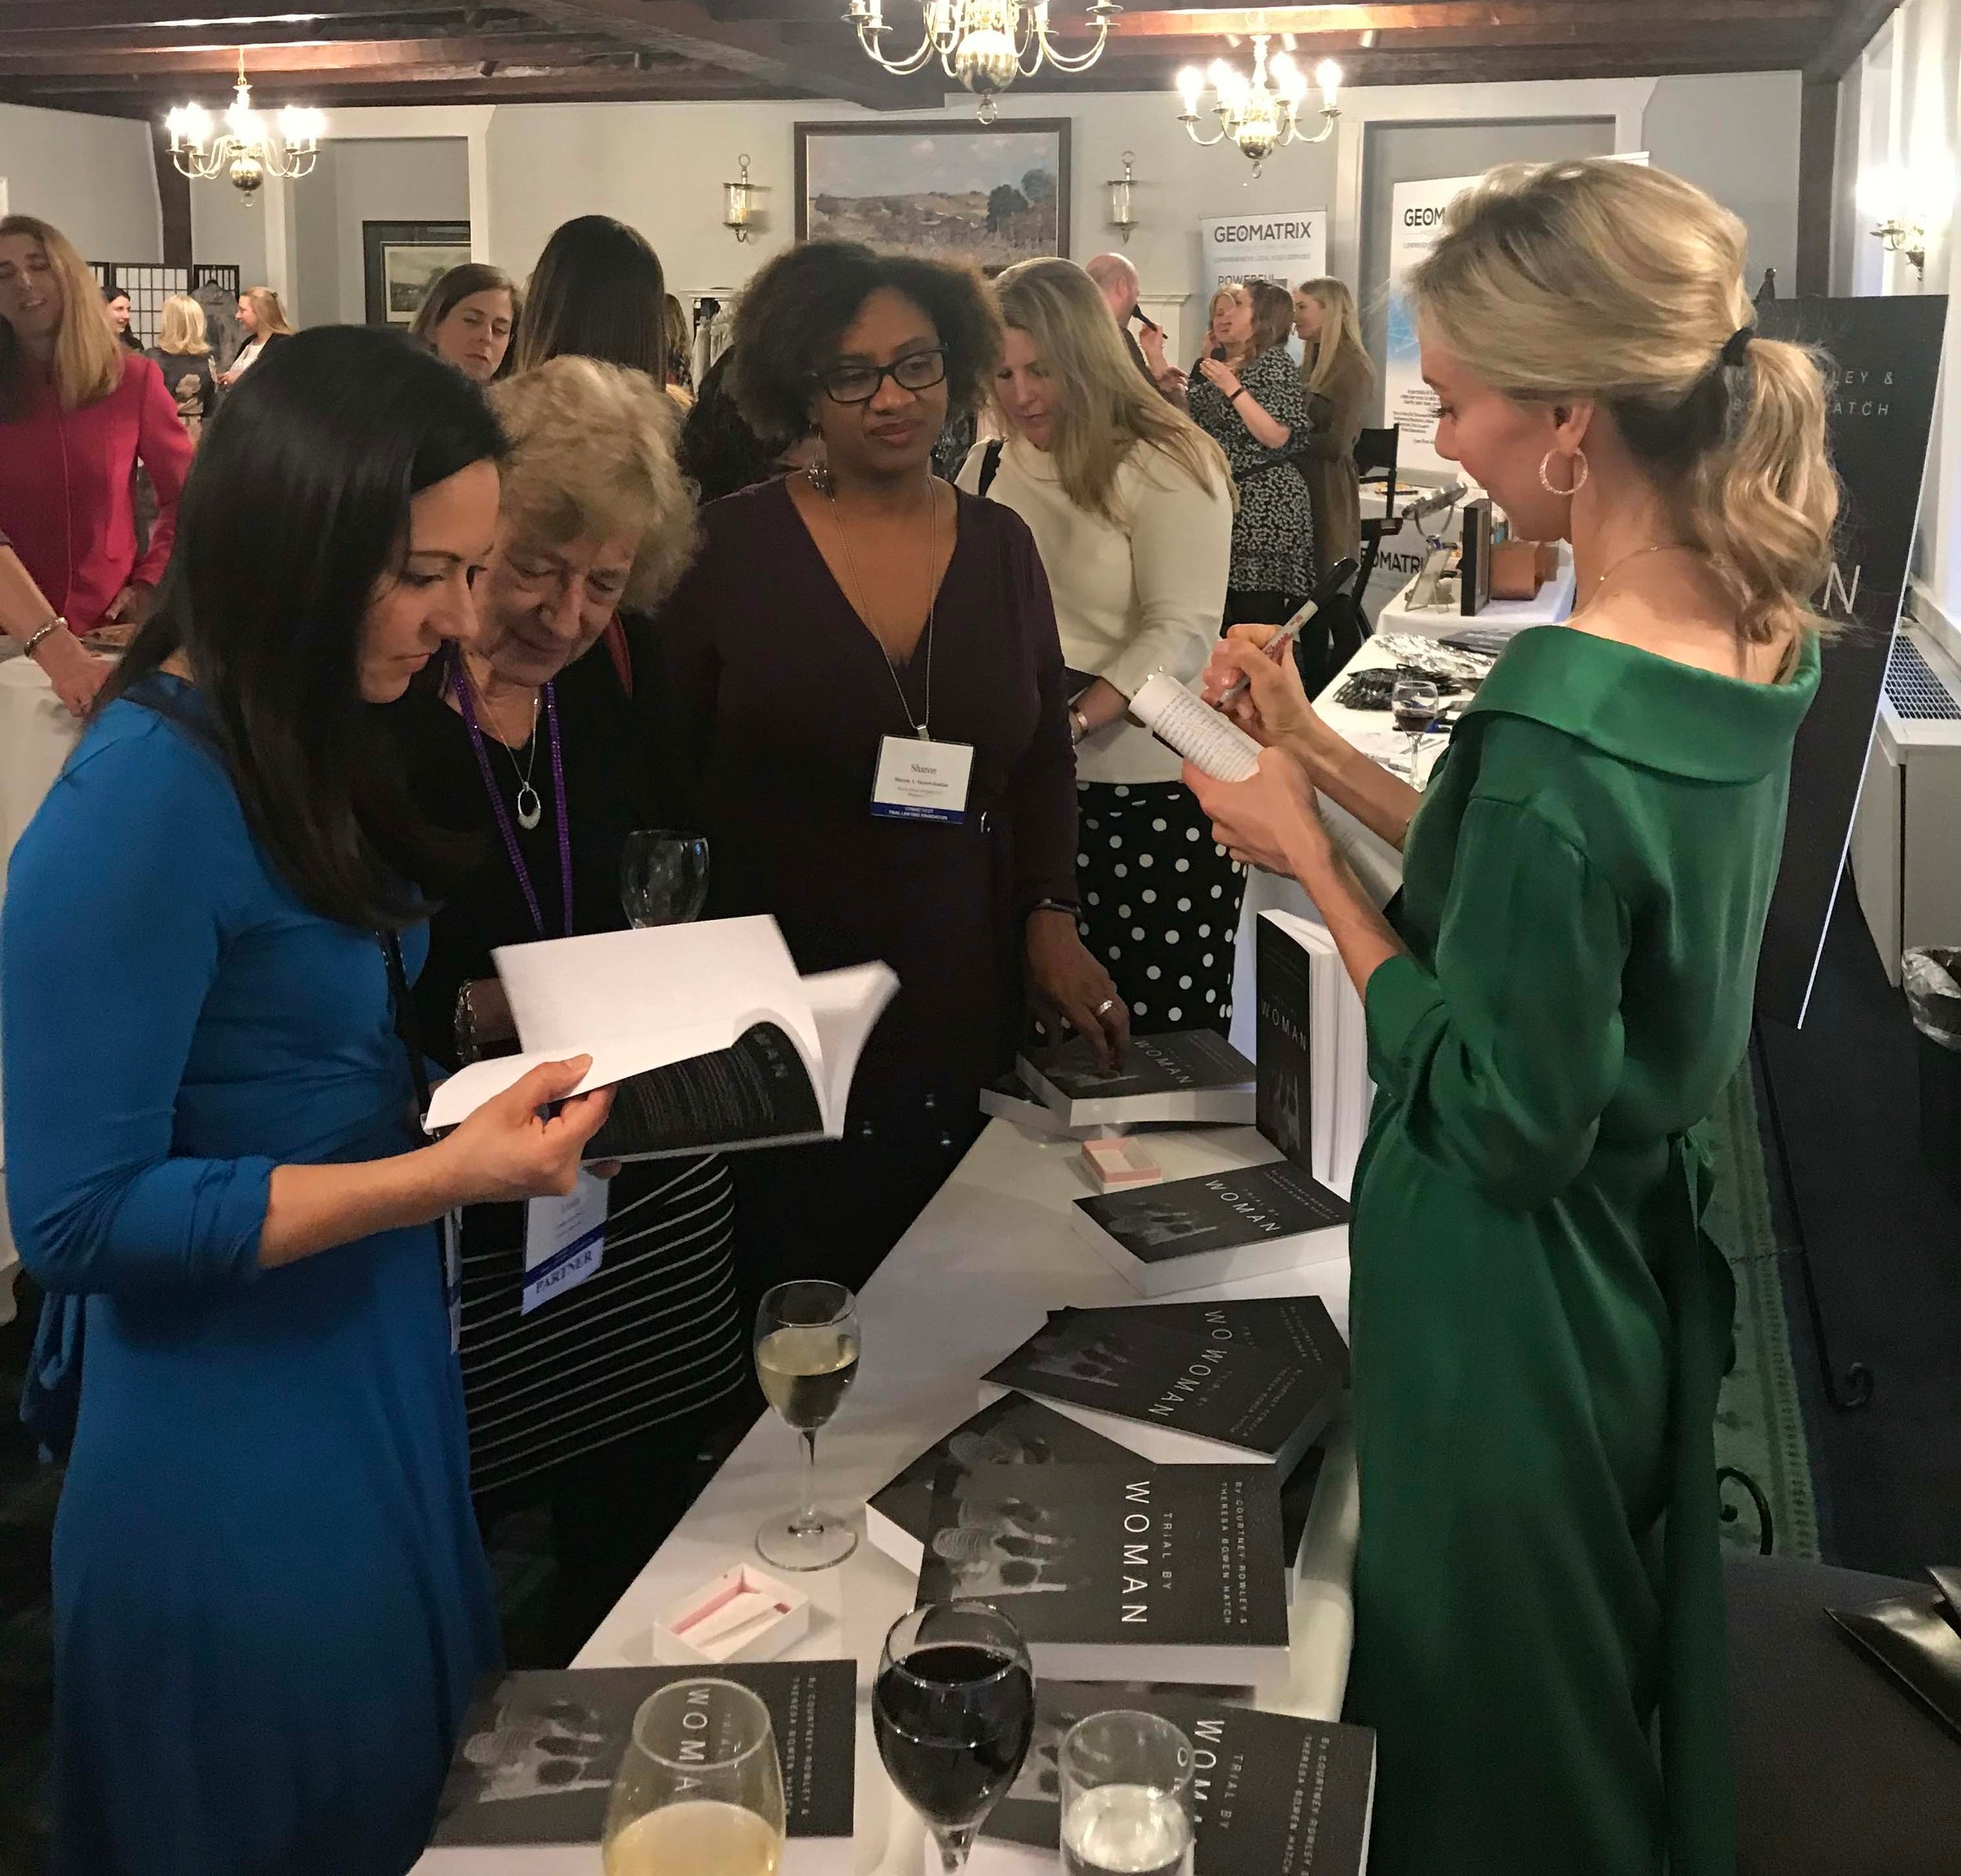 """Knowing Our Power: Women & Leadership"" - This event was hosted by the Connecticut Trial Lawyers Association's Women's Caucus, March 15-16, 2019, in Norwich, CT. Trial By Woman's Theresa presented the keynote and held a book signing for the ladies!"